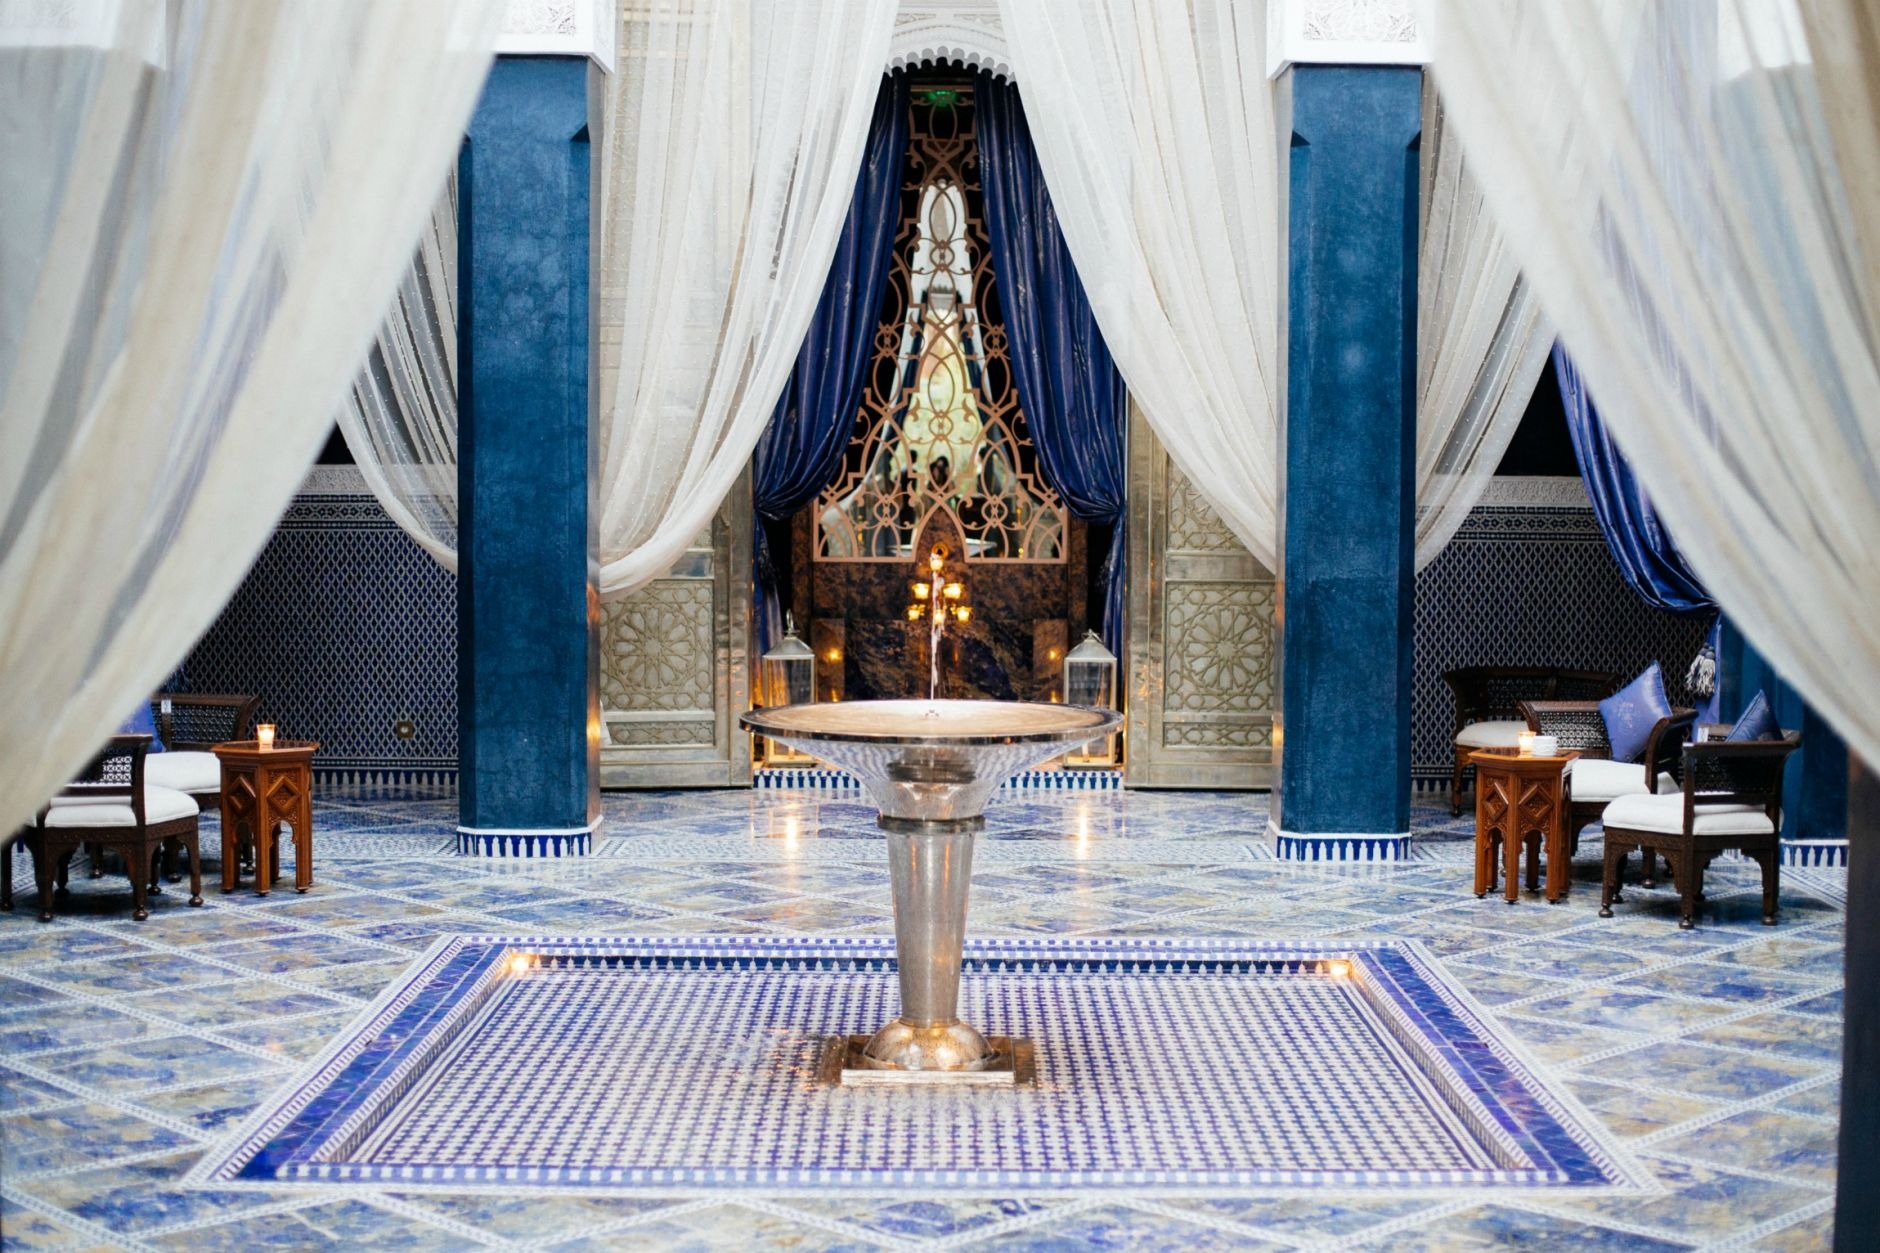 royal-mansour-hotel-luxury-marrakesch-marrakesh-morocco-edisa-shahini-disicouture-blog-50